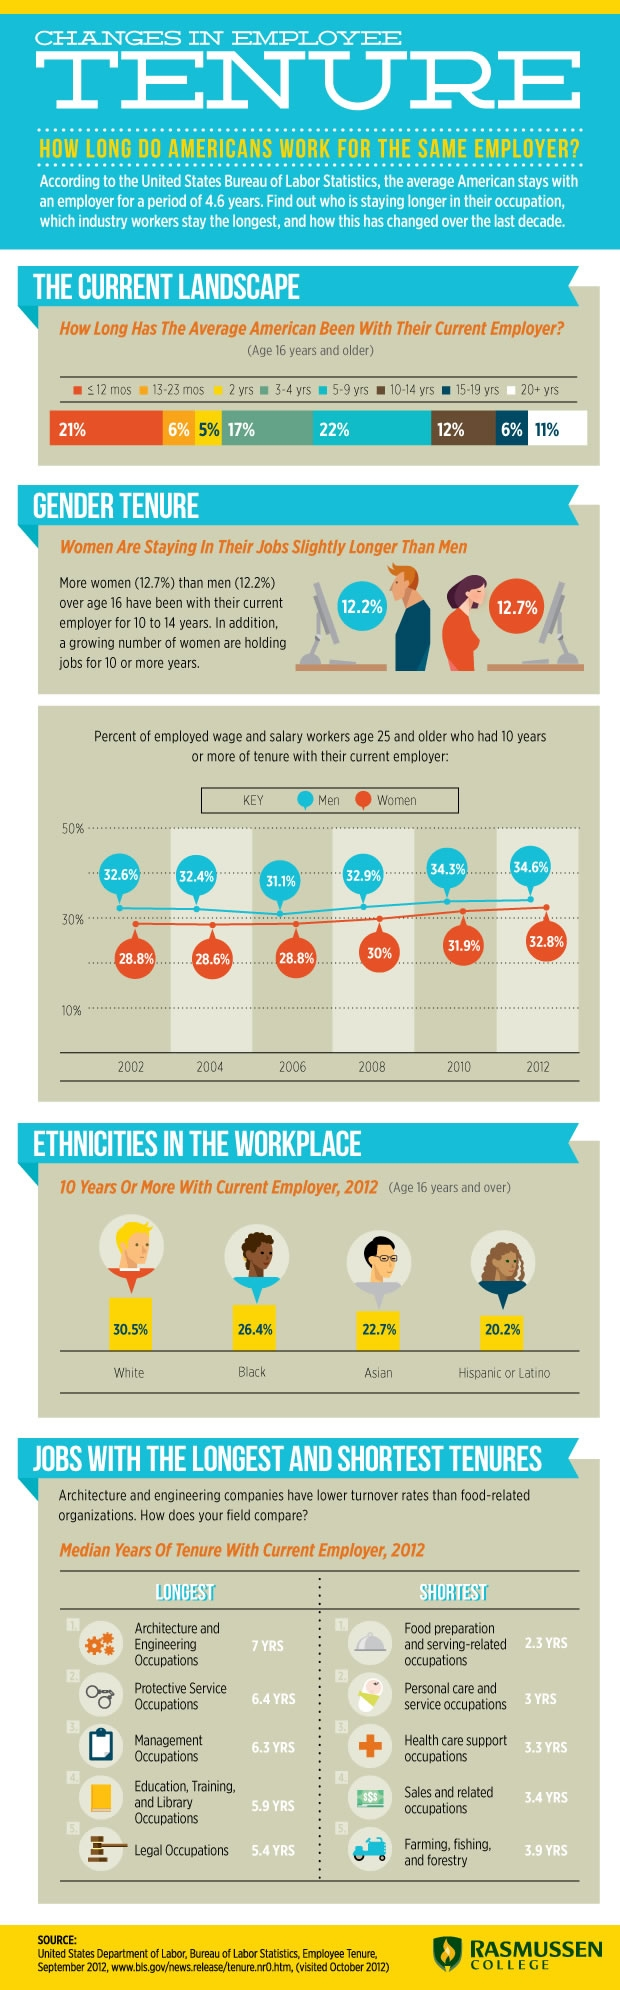 How Long Do Americans Work For The Same Employer